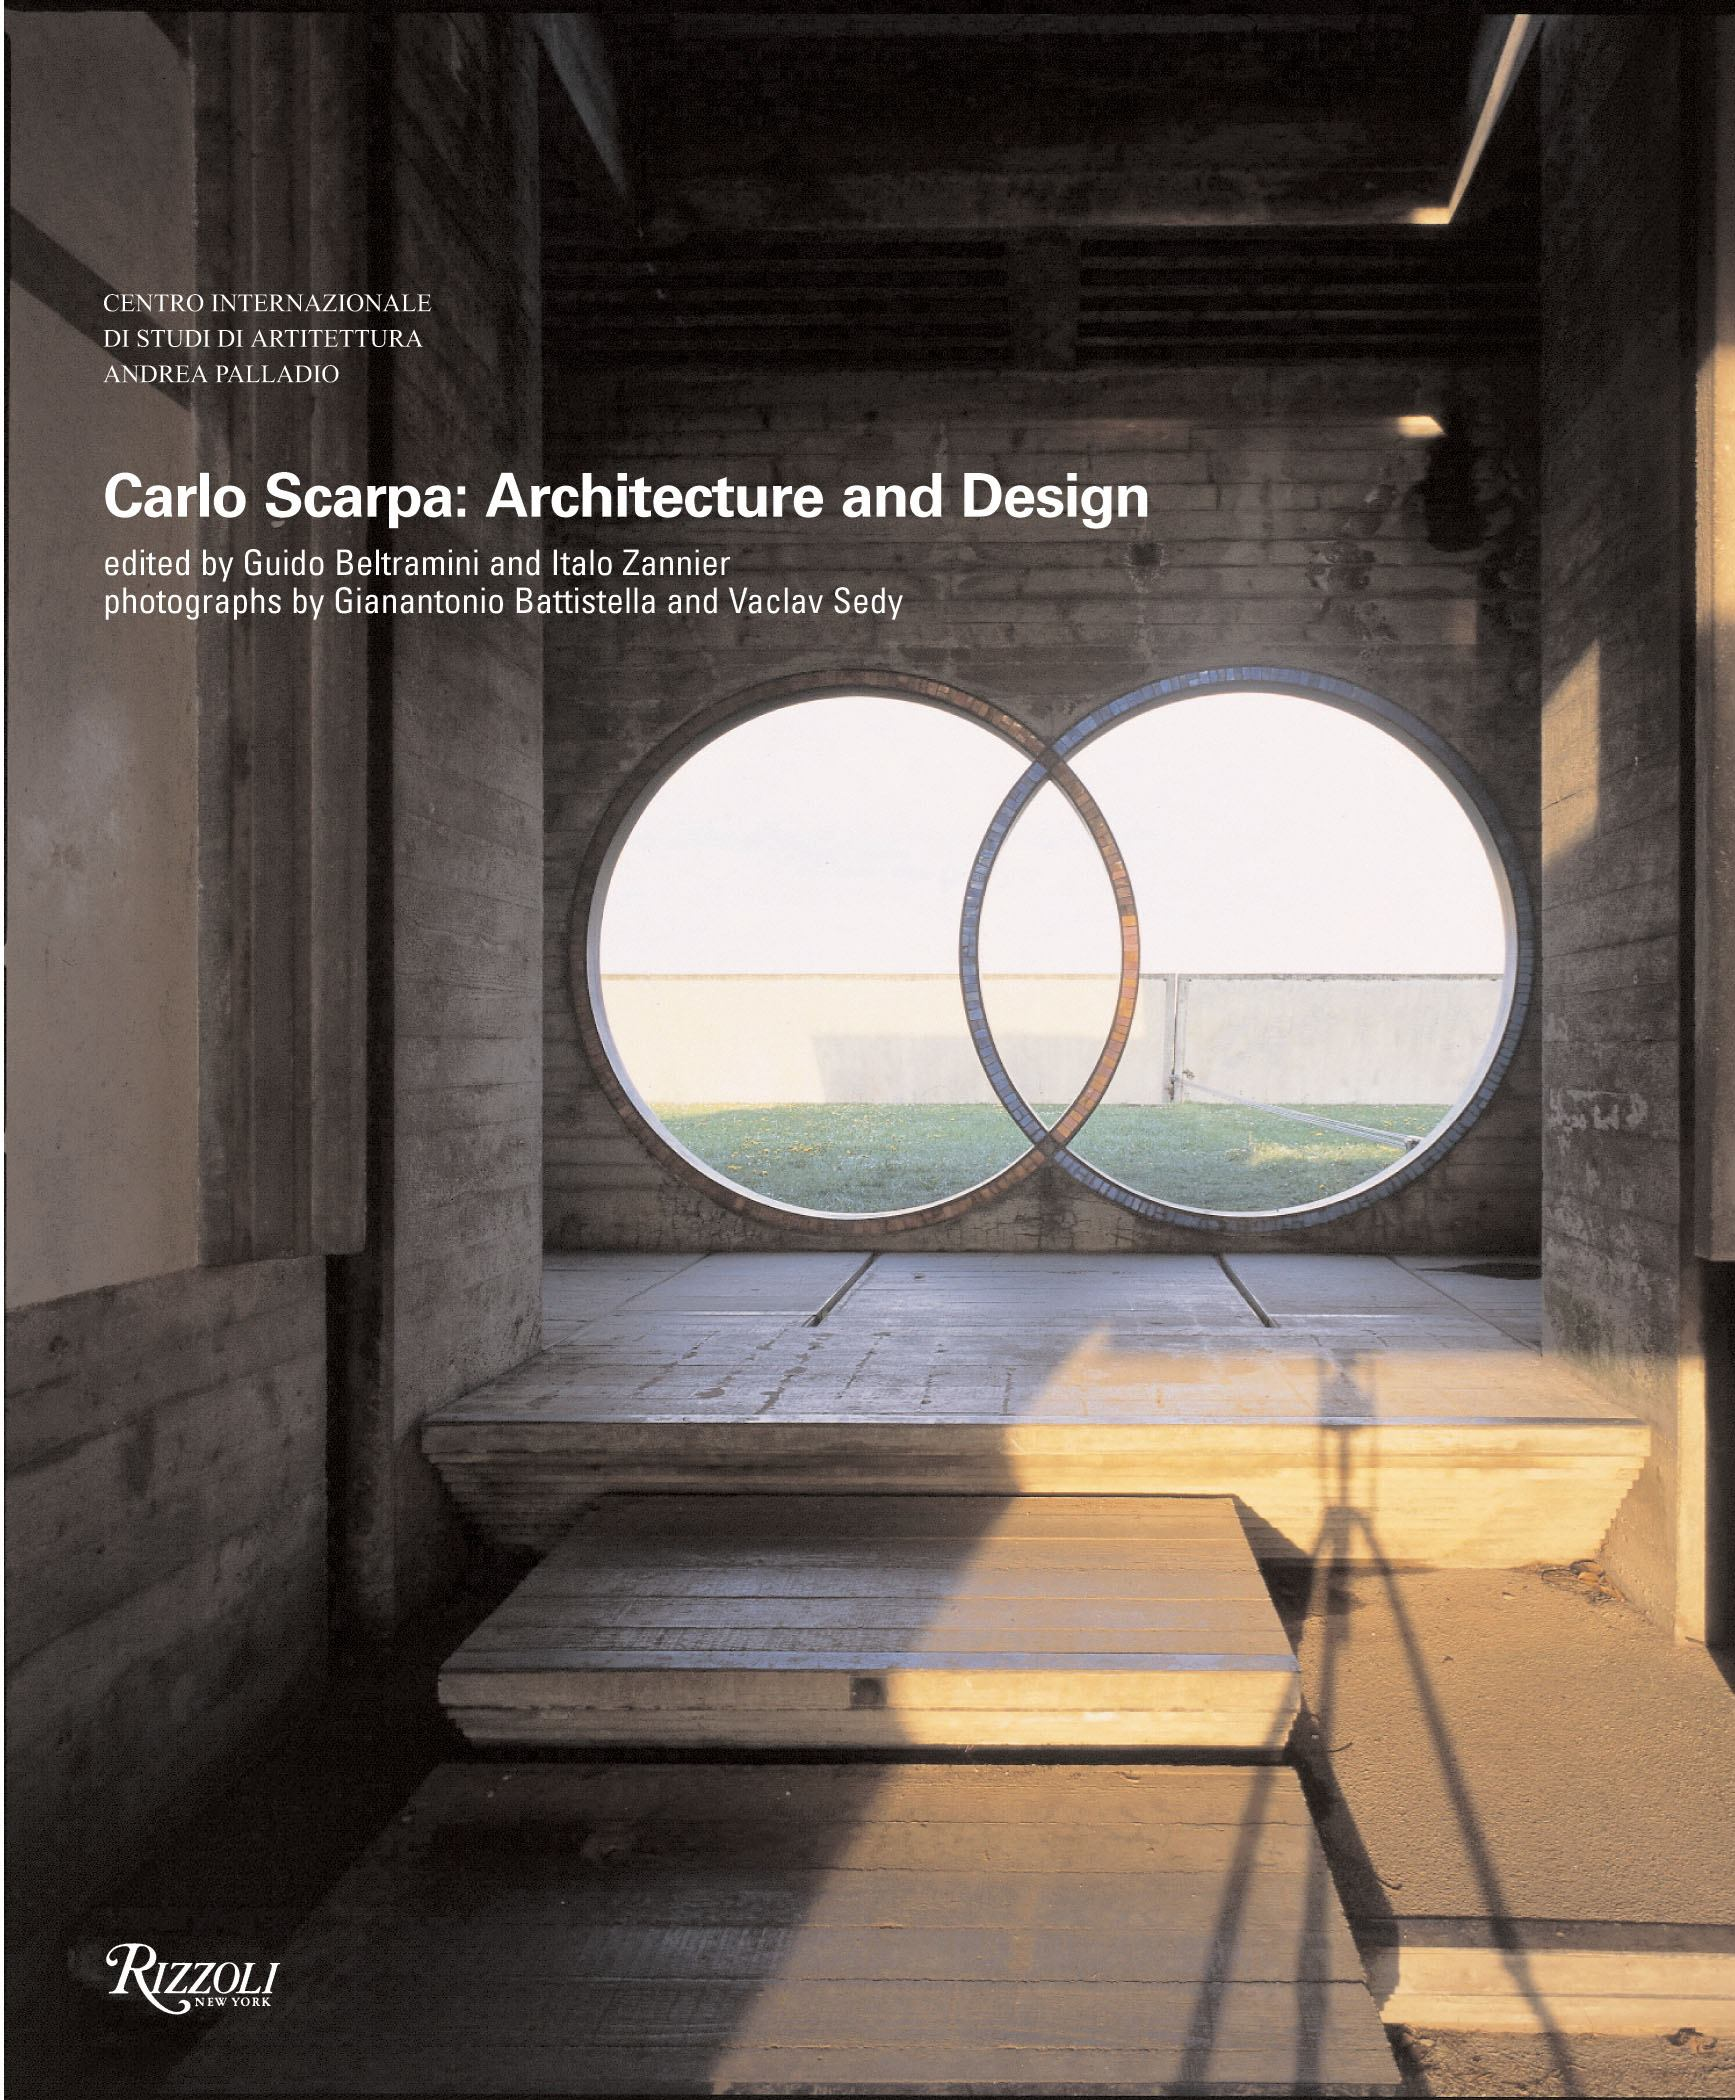 Book Review : Carlo Scarpa: Architecture And Design, By